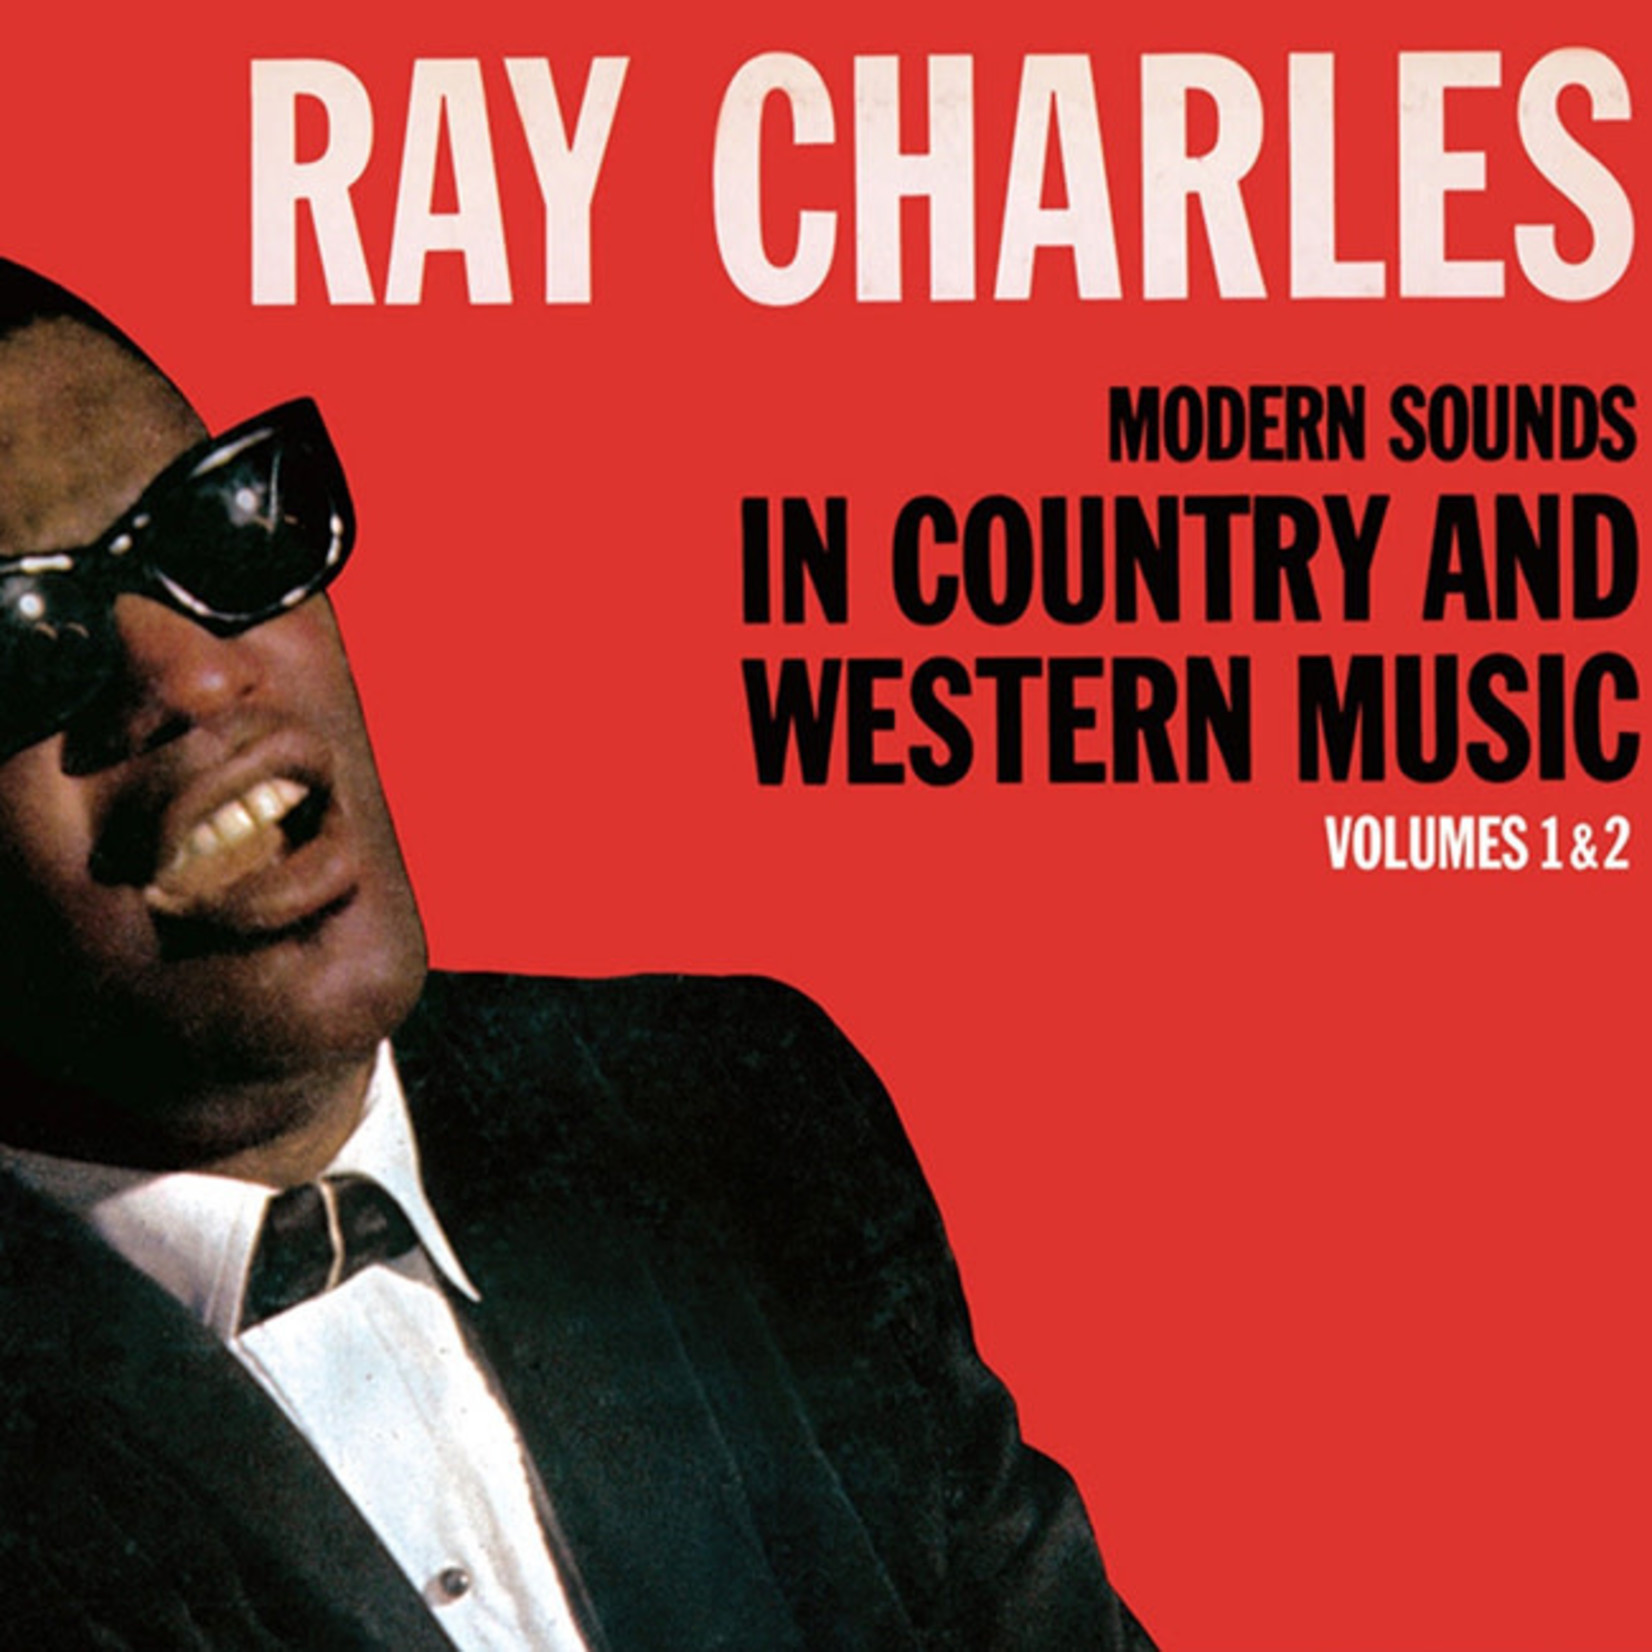 [New] Charles, Ray: Modern Sounds in Country & Western Vol. 1 & 2 (2LP)